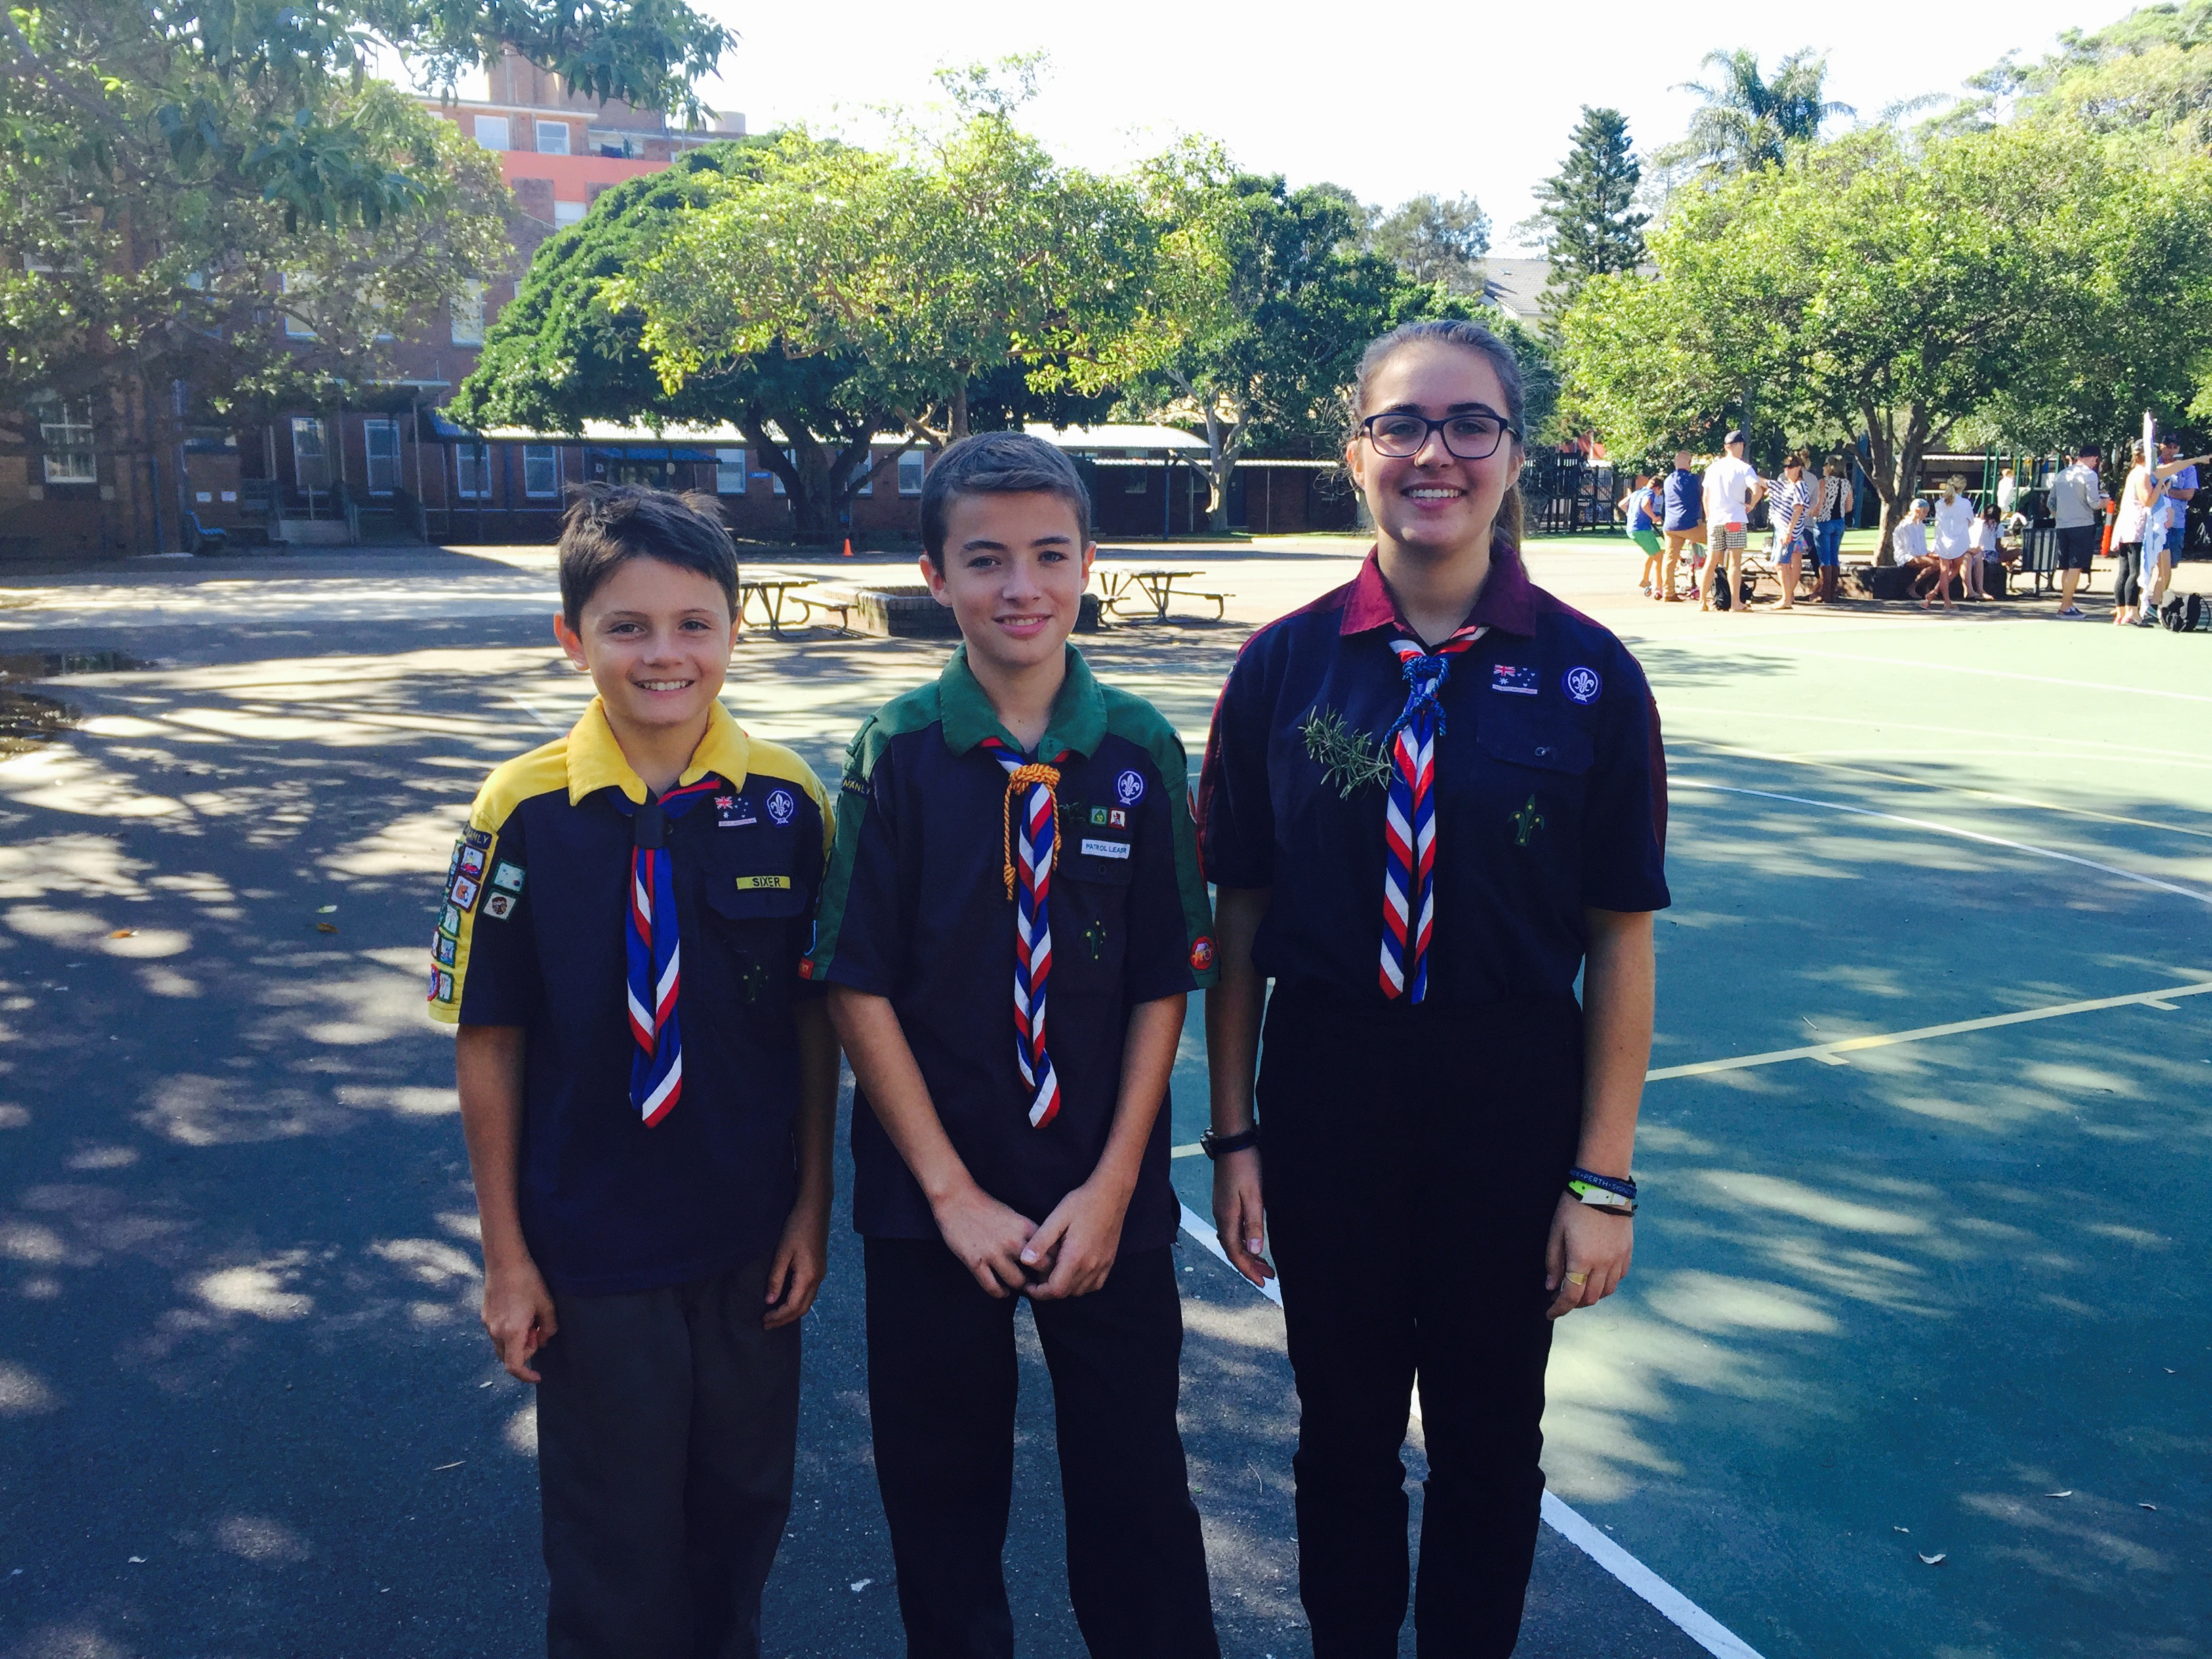 The three Sections - ANZAC Day 2015